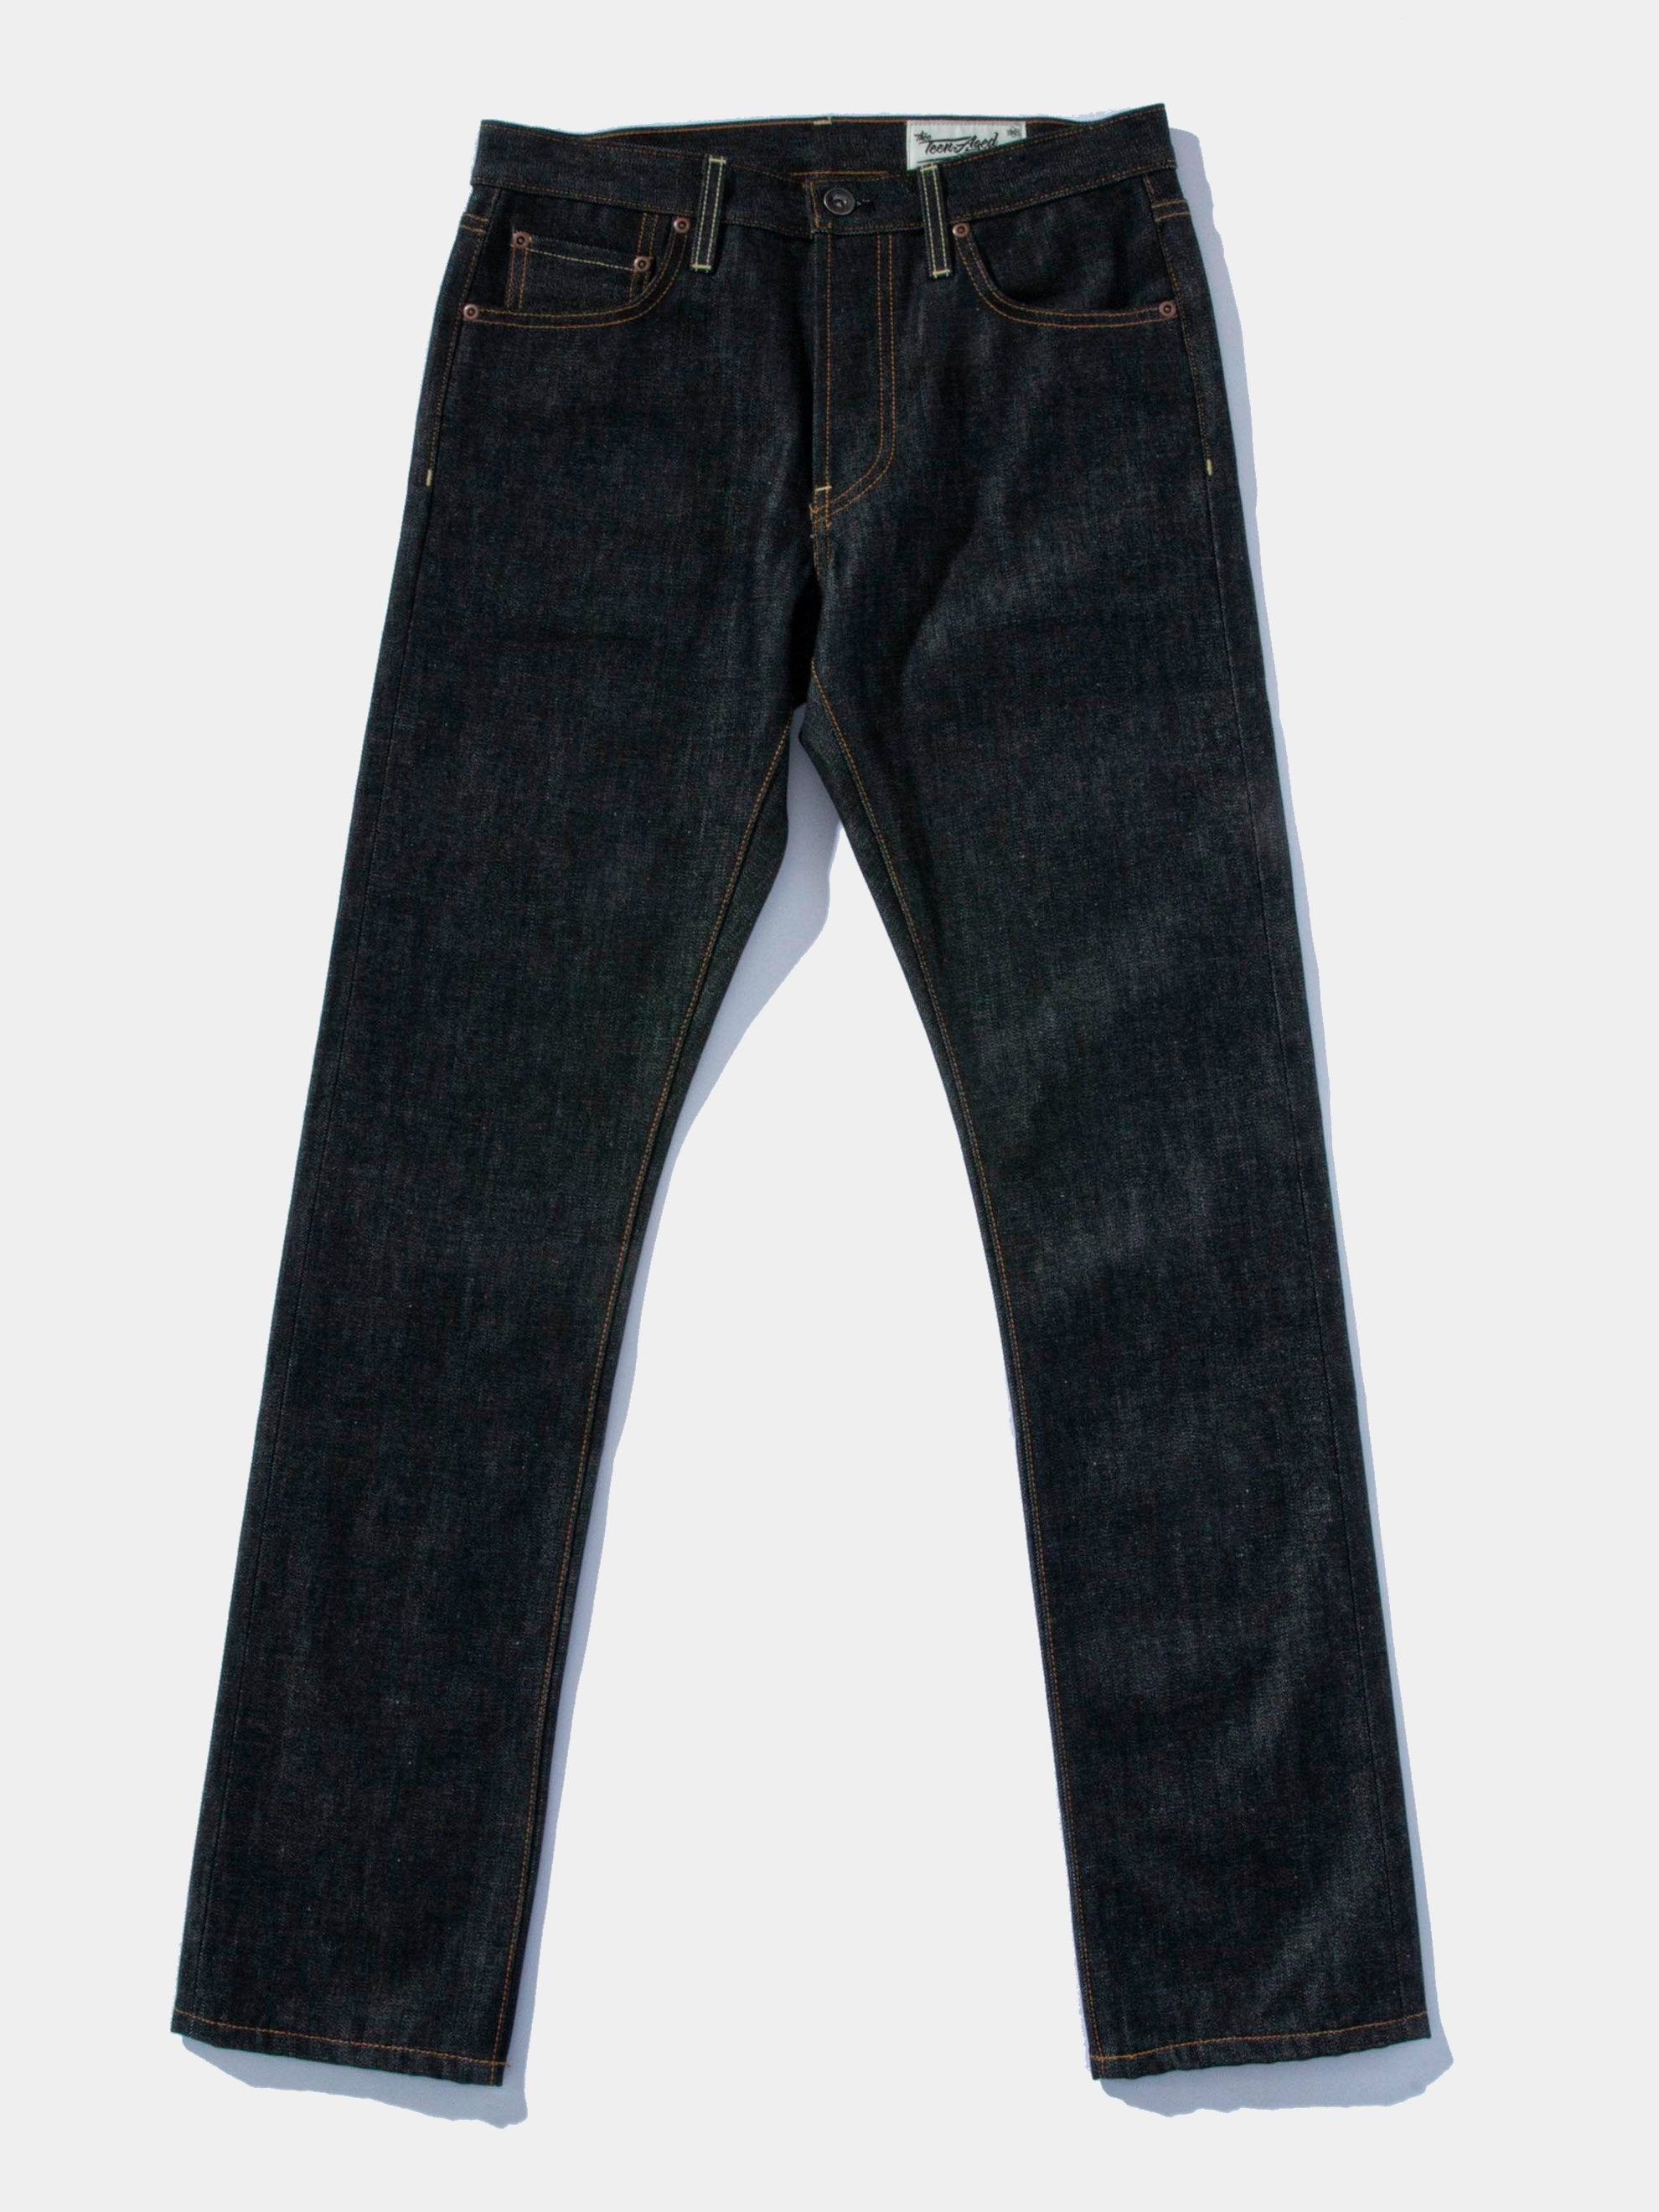 Black Mr. Wilson Union Jean 1